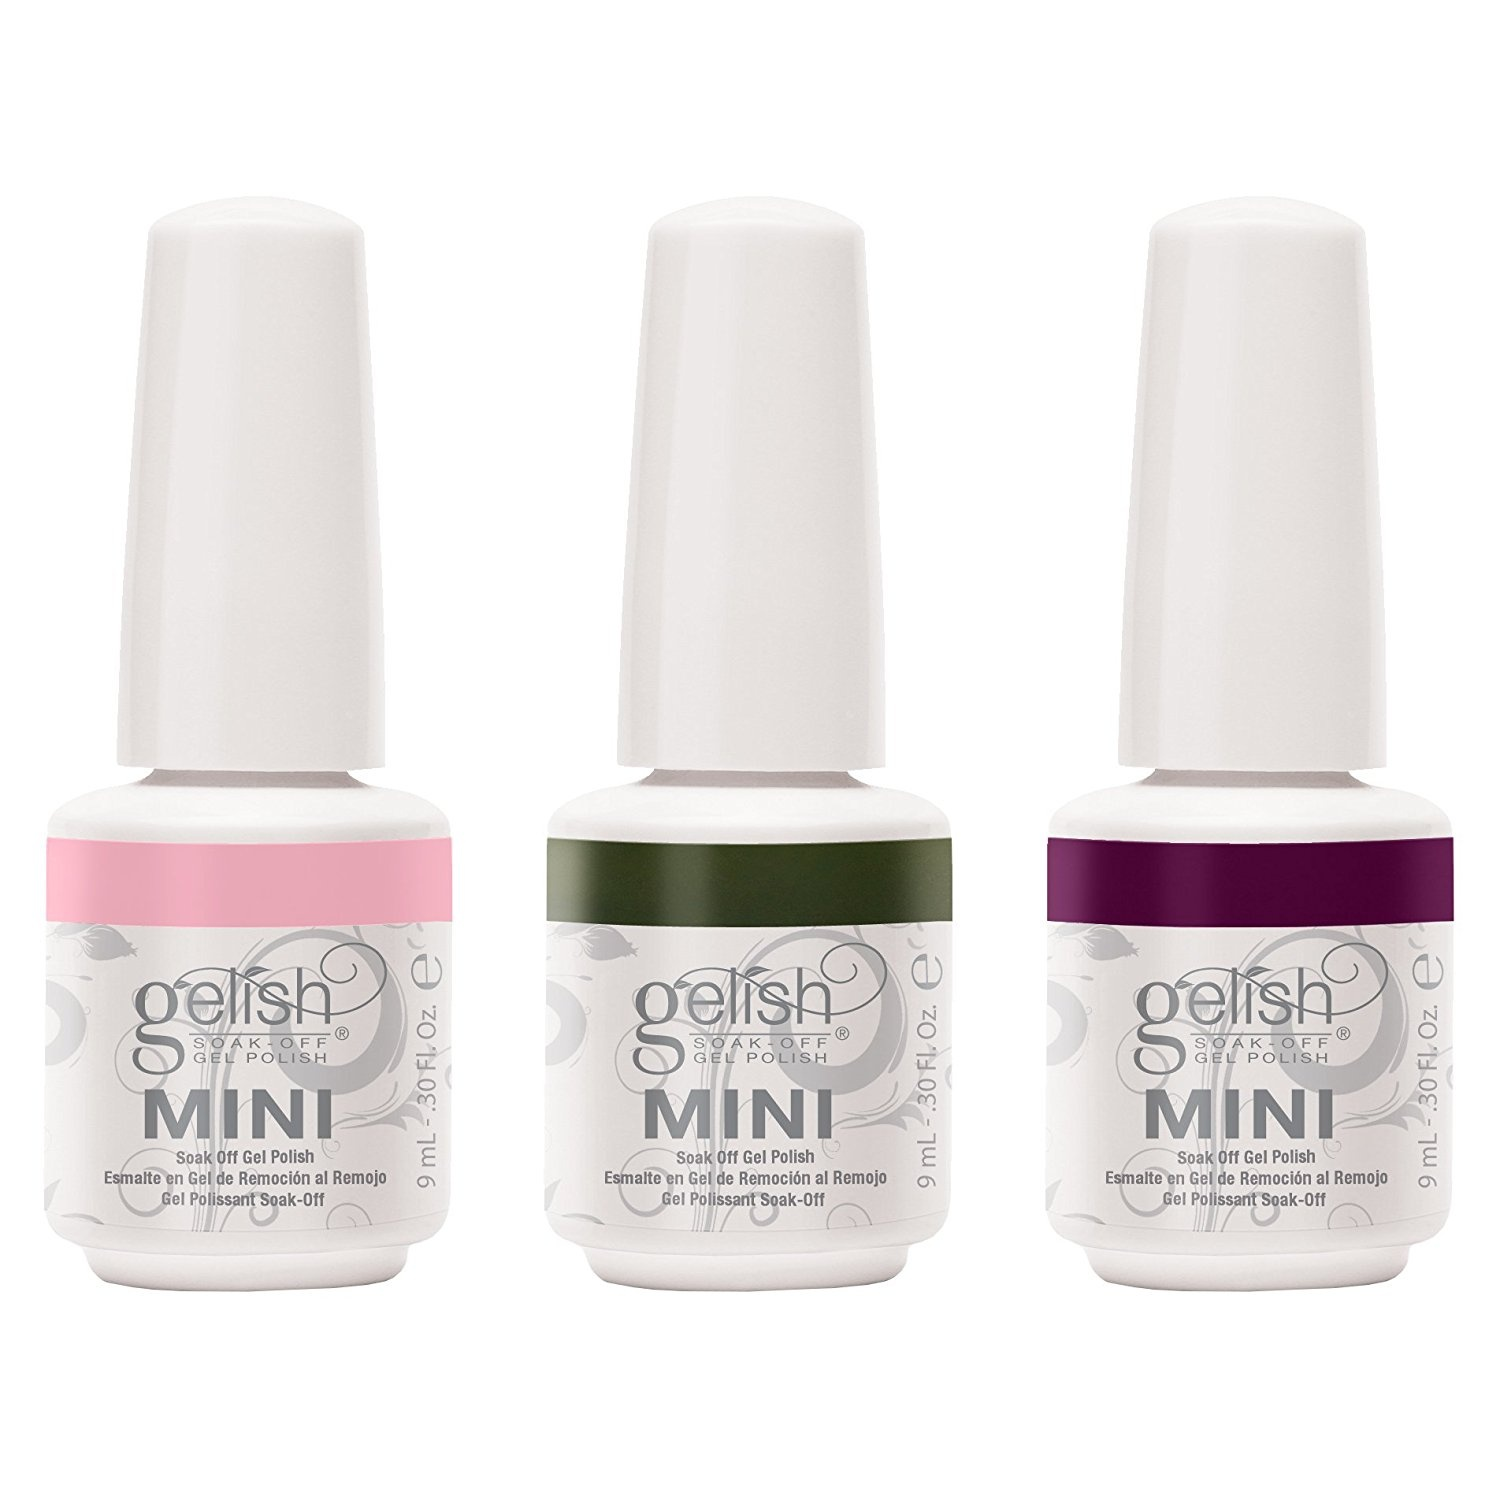 Gelish Kit Beauty: Buy Online from Fishpond.co.nz